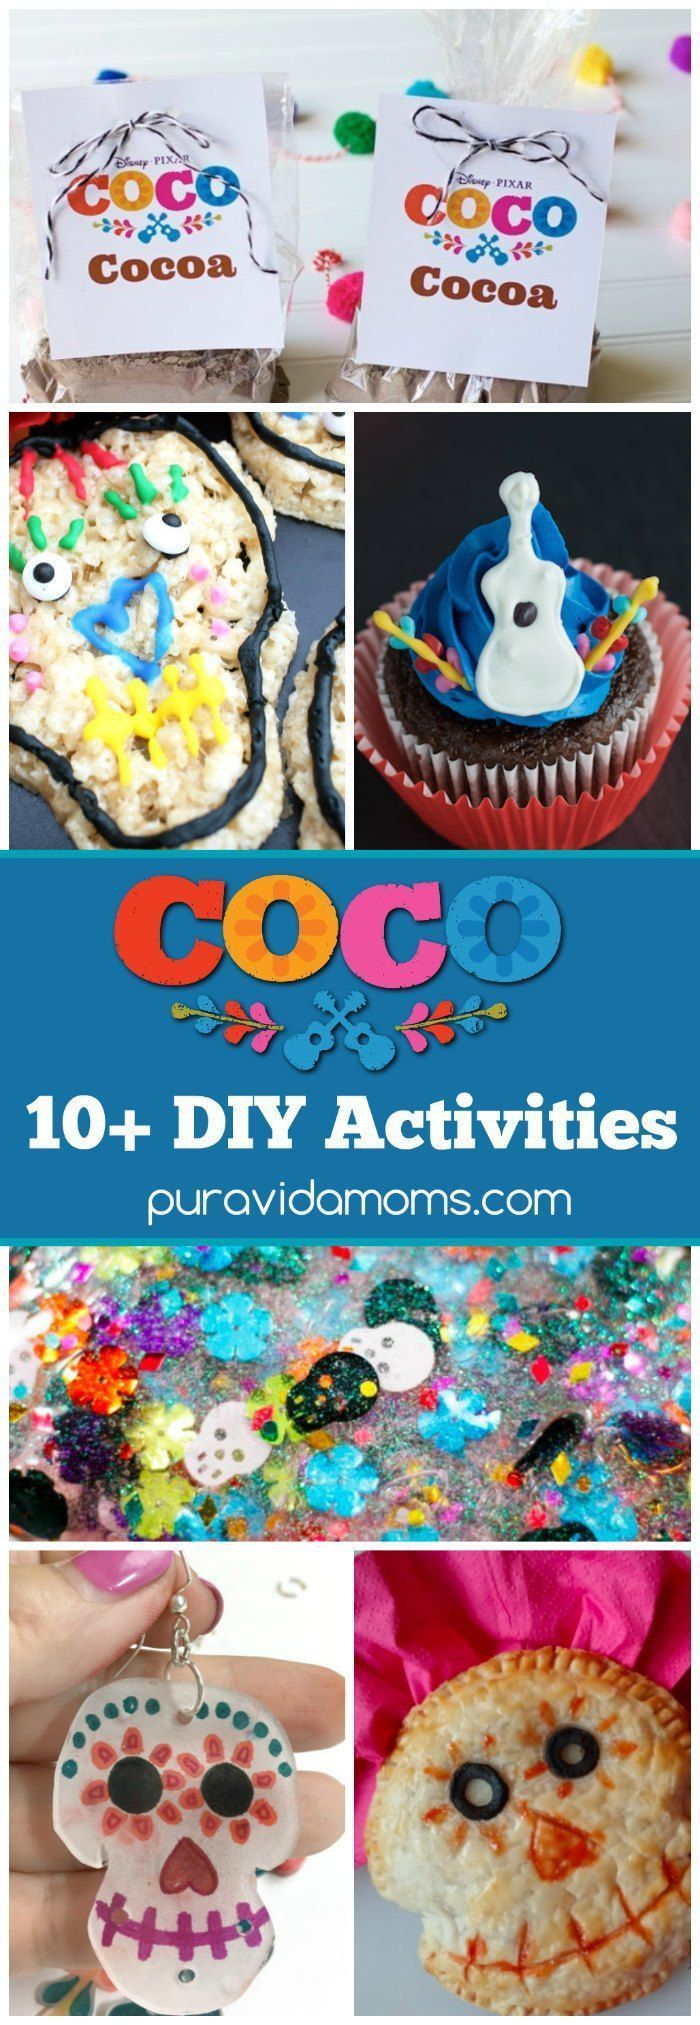 Disney Pixar's Coco movie celebrates family and Mexican culture! We've brought you a list of 10+ Coco movie inspired crafts and recipes you can create at home!